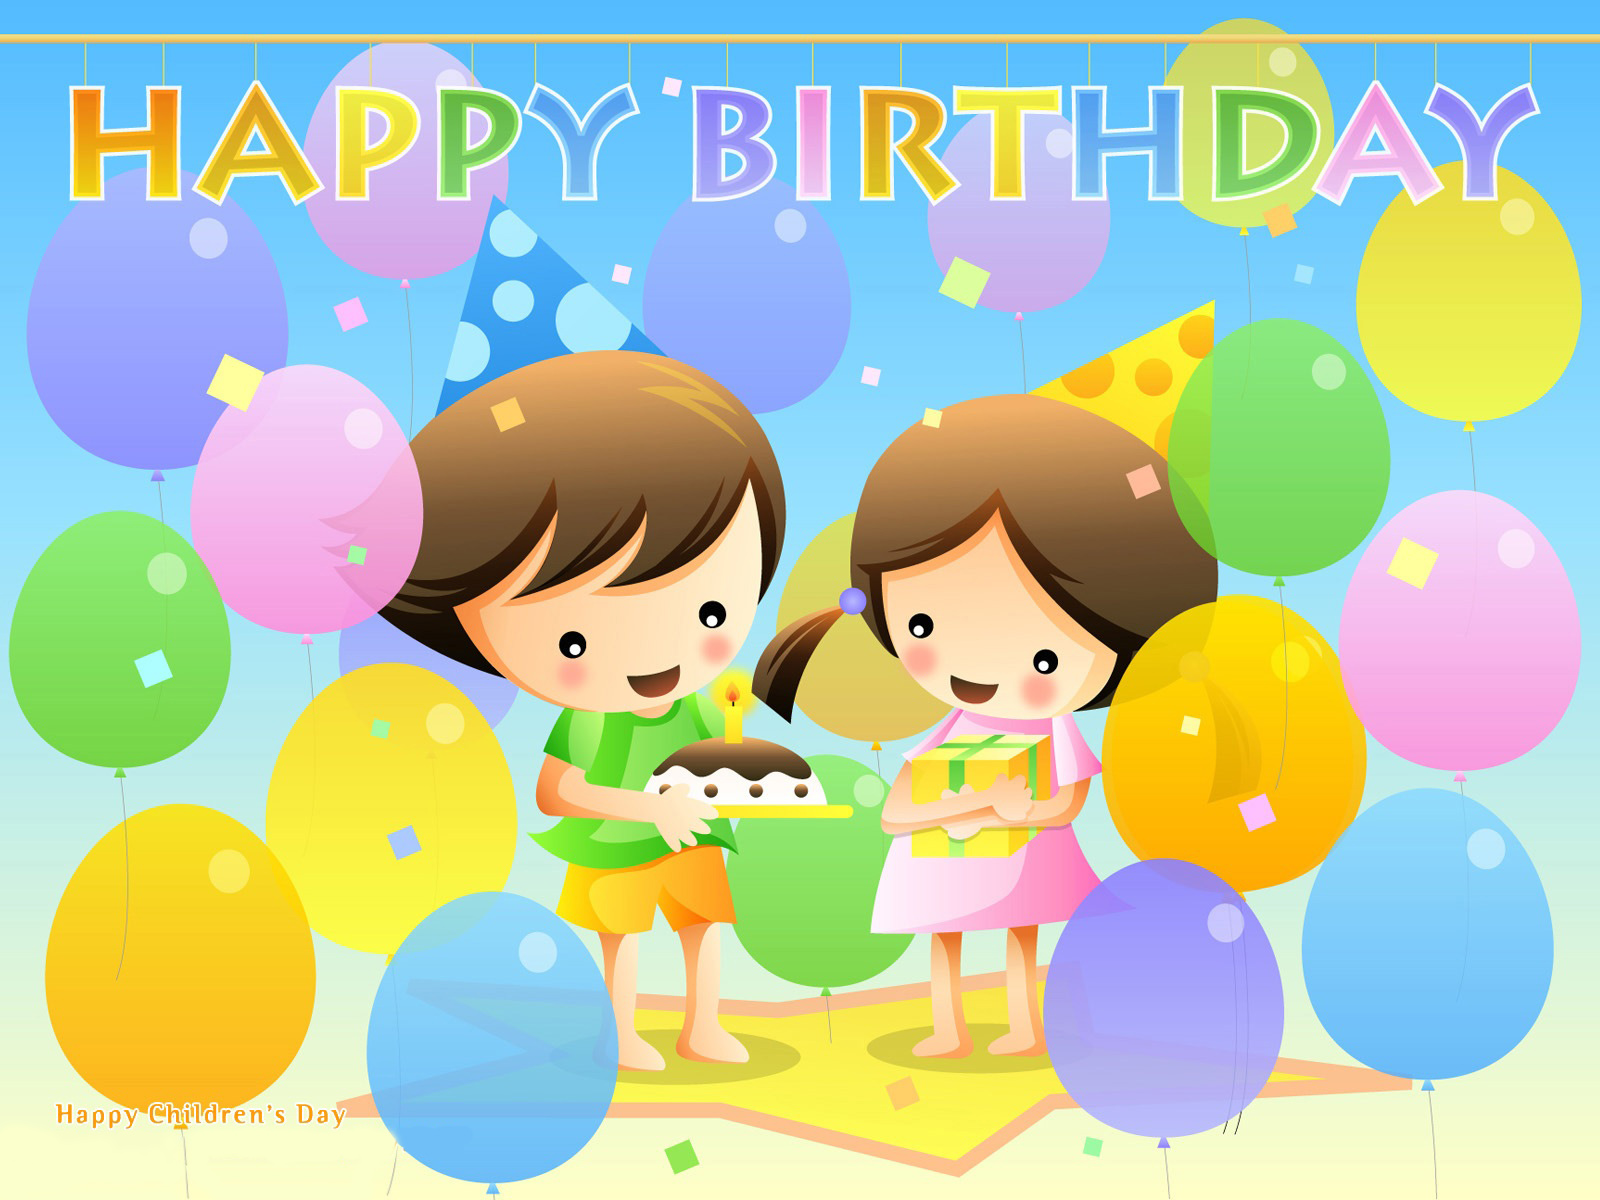 http://4.bp.blogspot.com/-ZGSK80I7oe0/T3TeoXTZQCI/AAAAAAAABEw/INg8tjipOO8/s1600/happy-birthday-HD_wallpapers.jpg